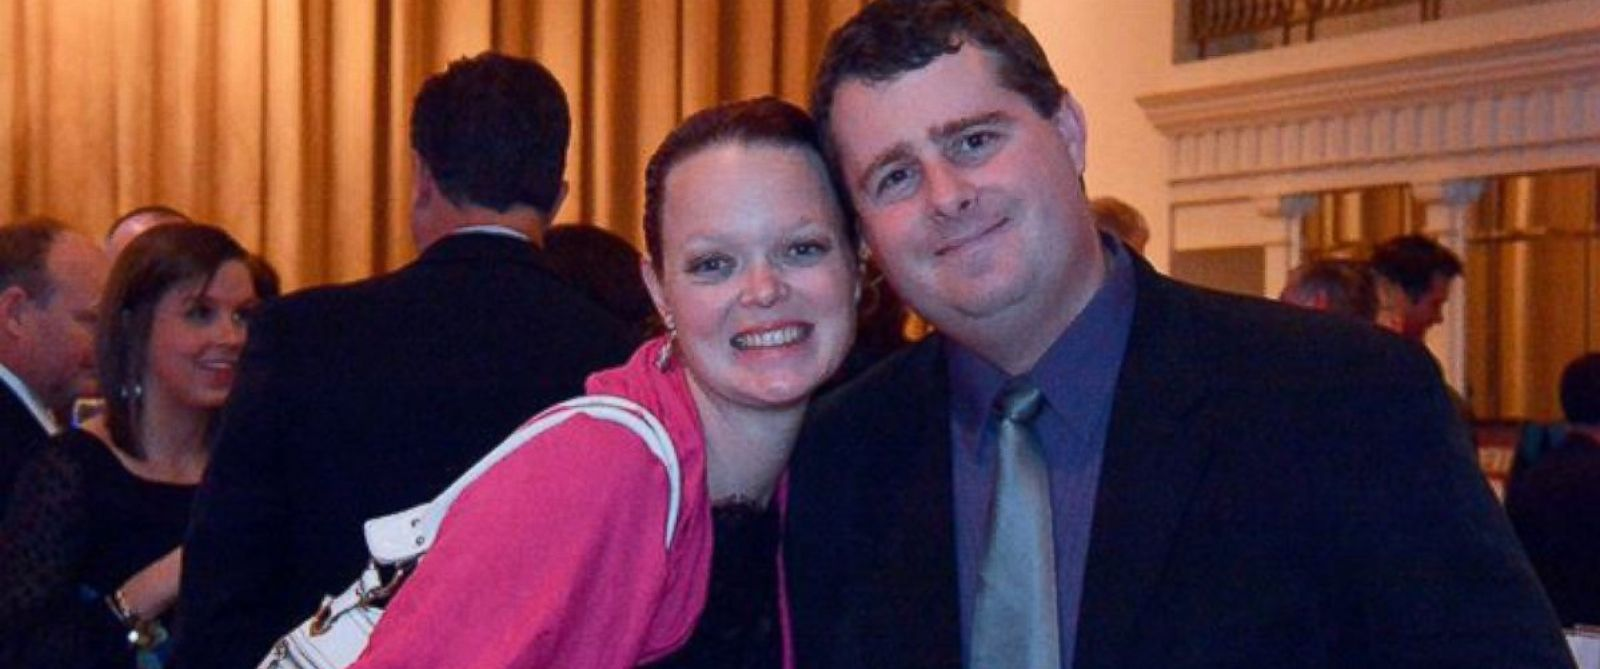 PHOTO: Ken Gemmell and his wife Marie, who died when a plane crashed through their home.